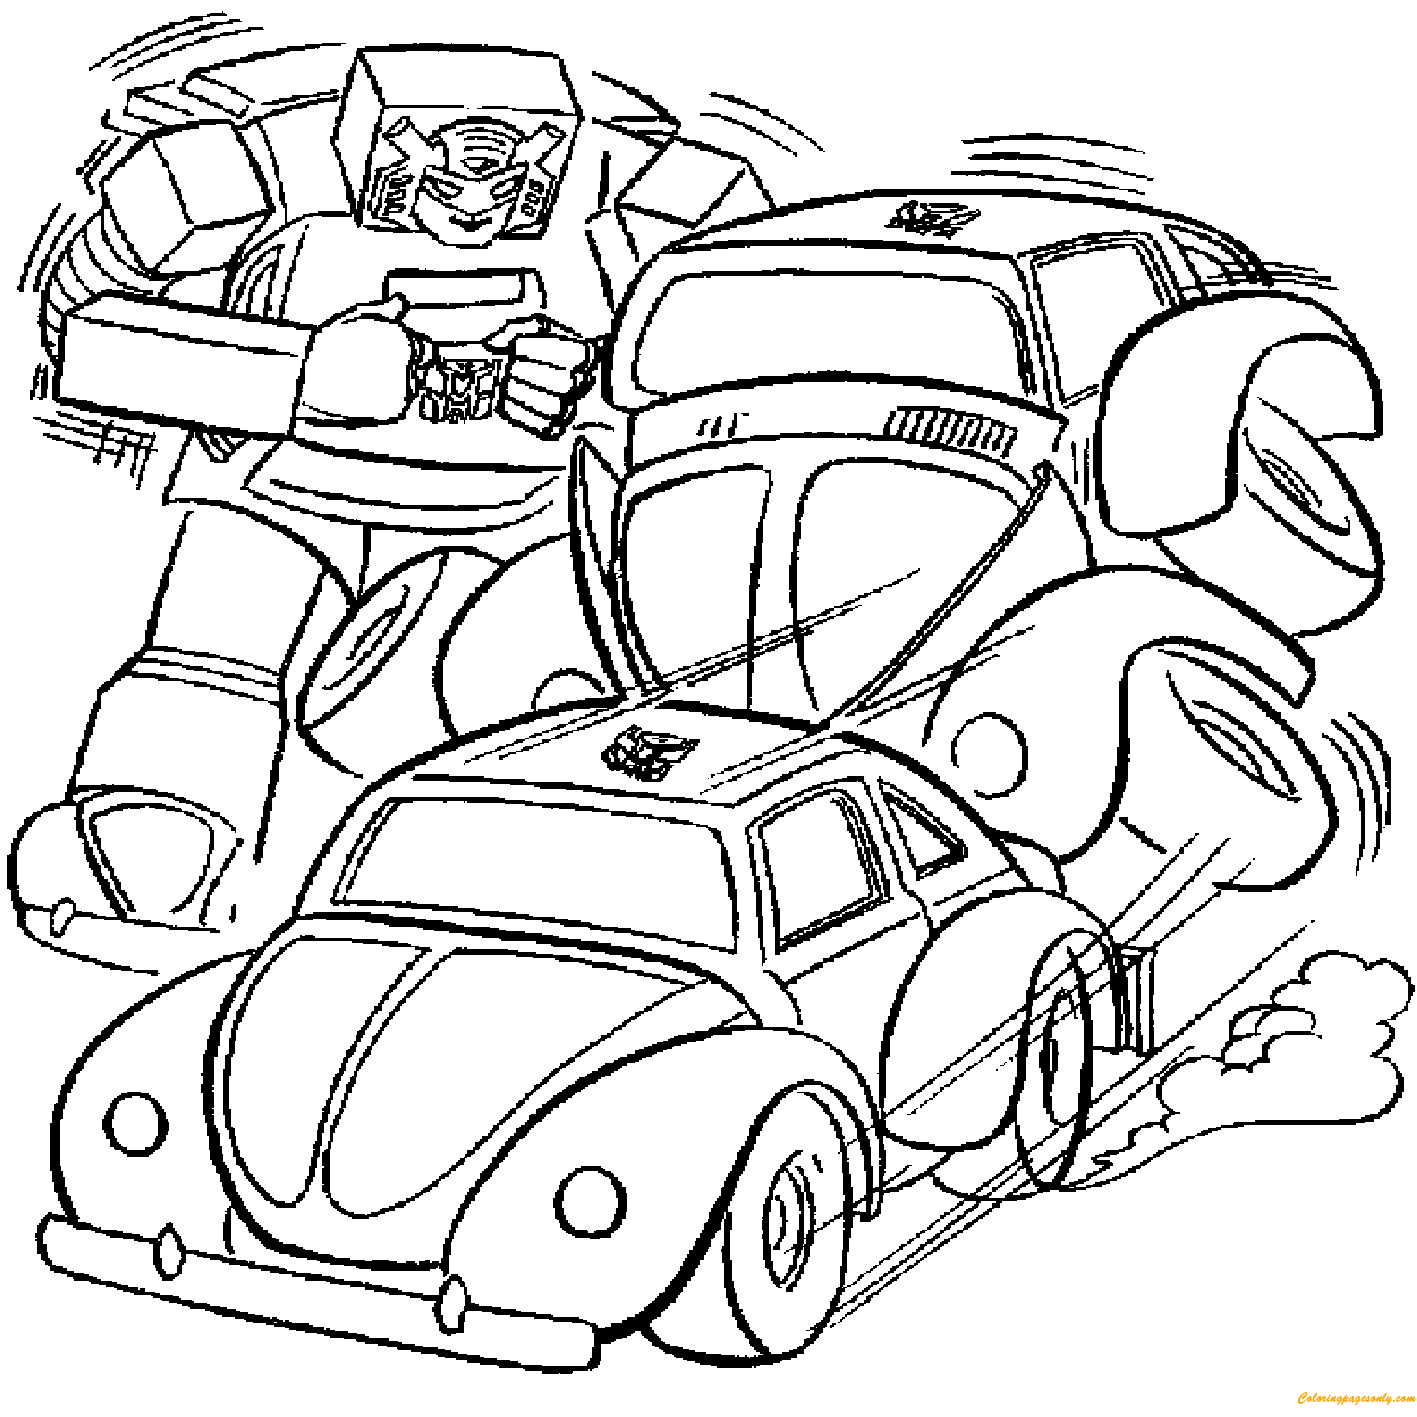 Transformers Breaking Cars Coloring Page